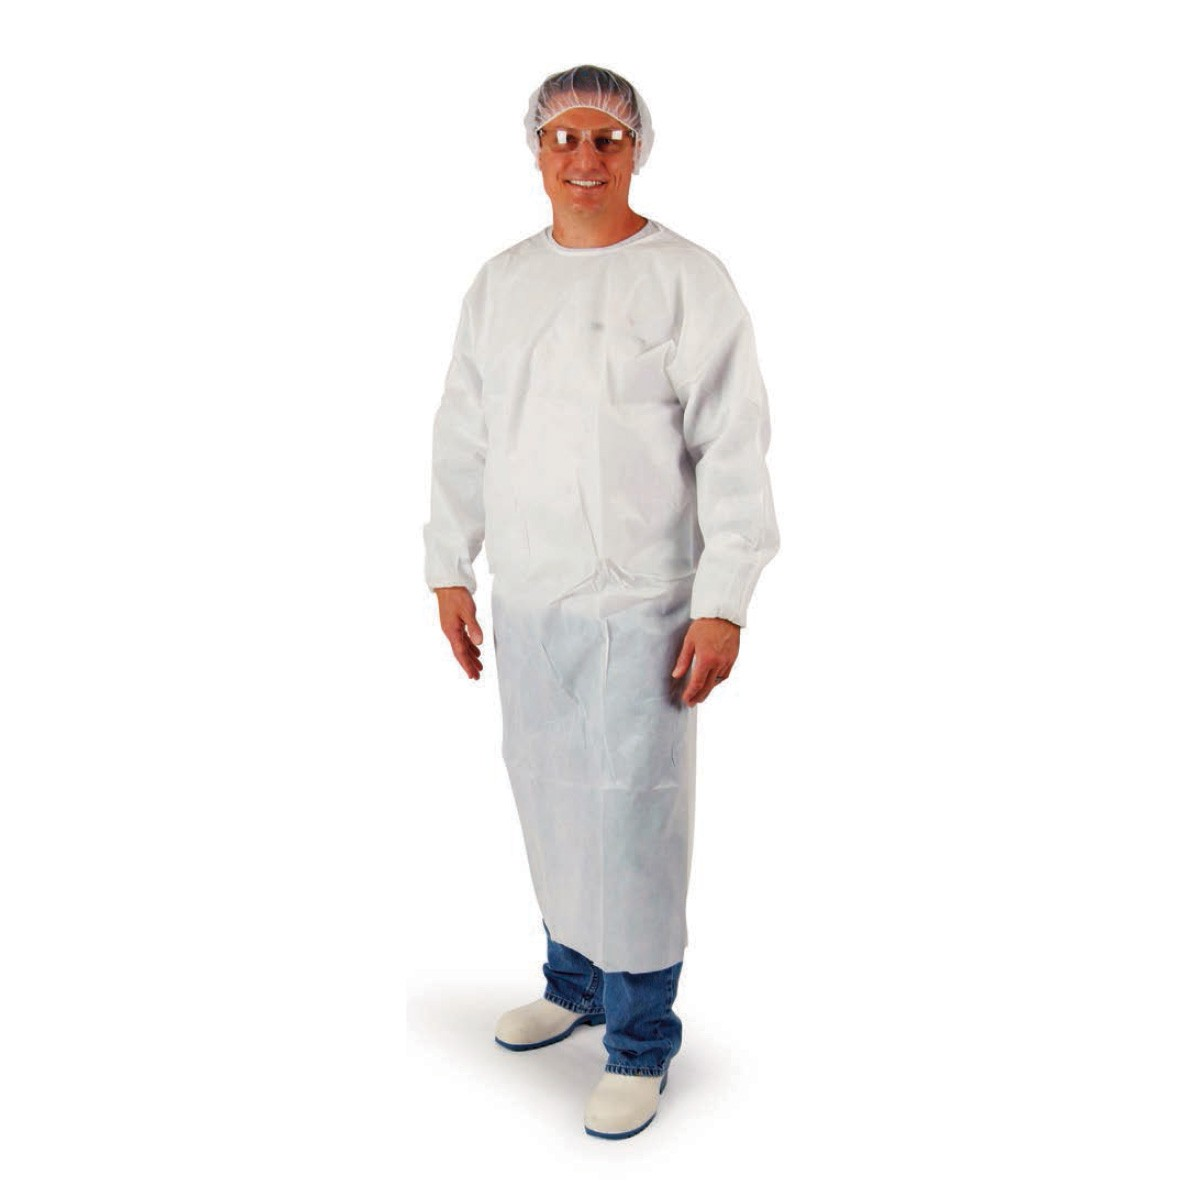 Polyethylene Coated Disposable Gowns   UltraSource food equipment ...